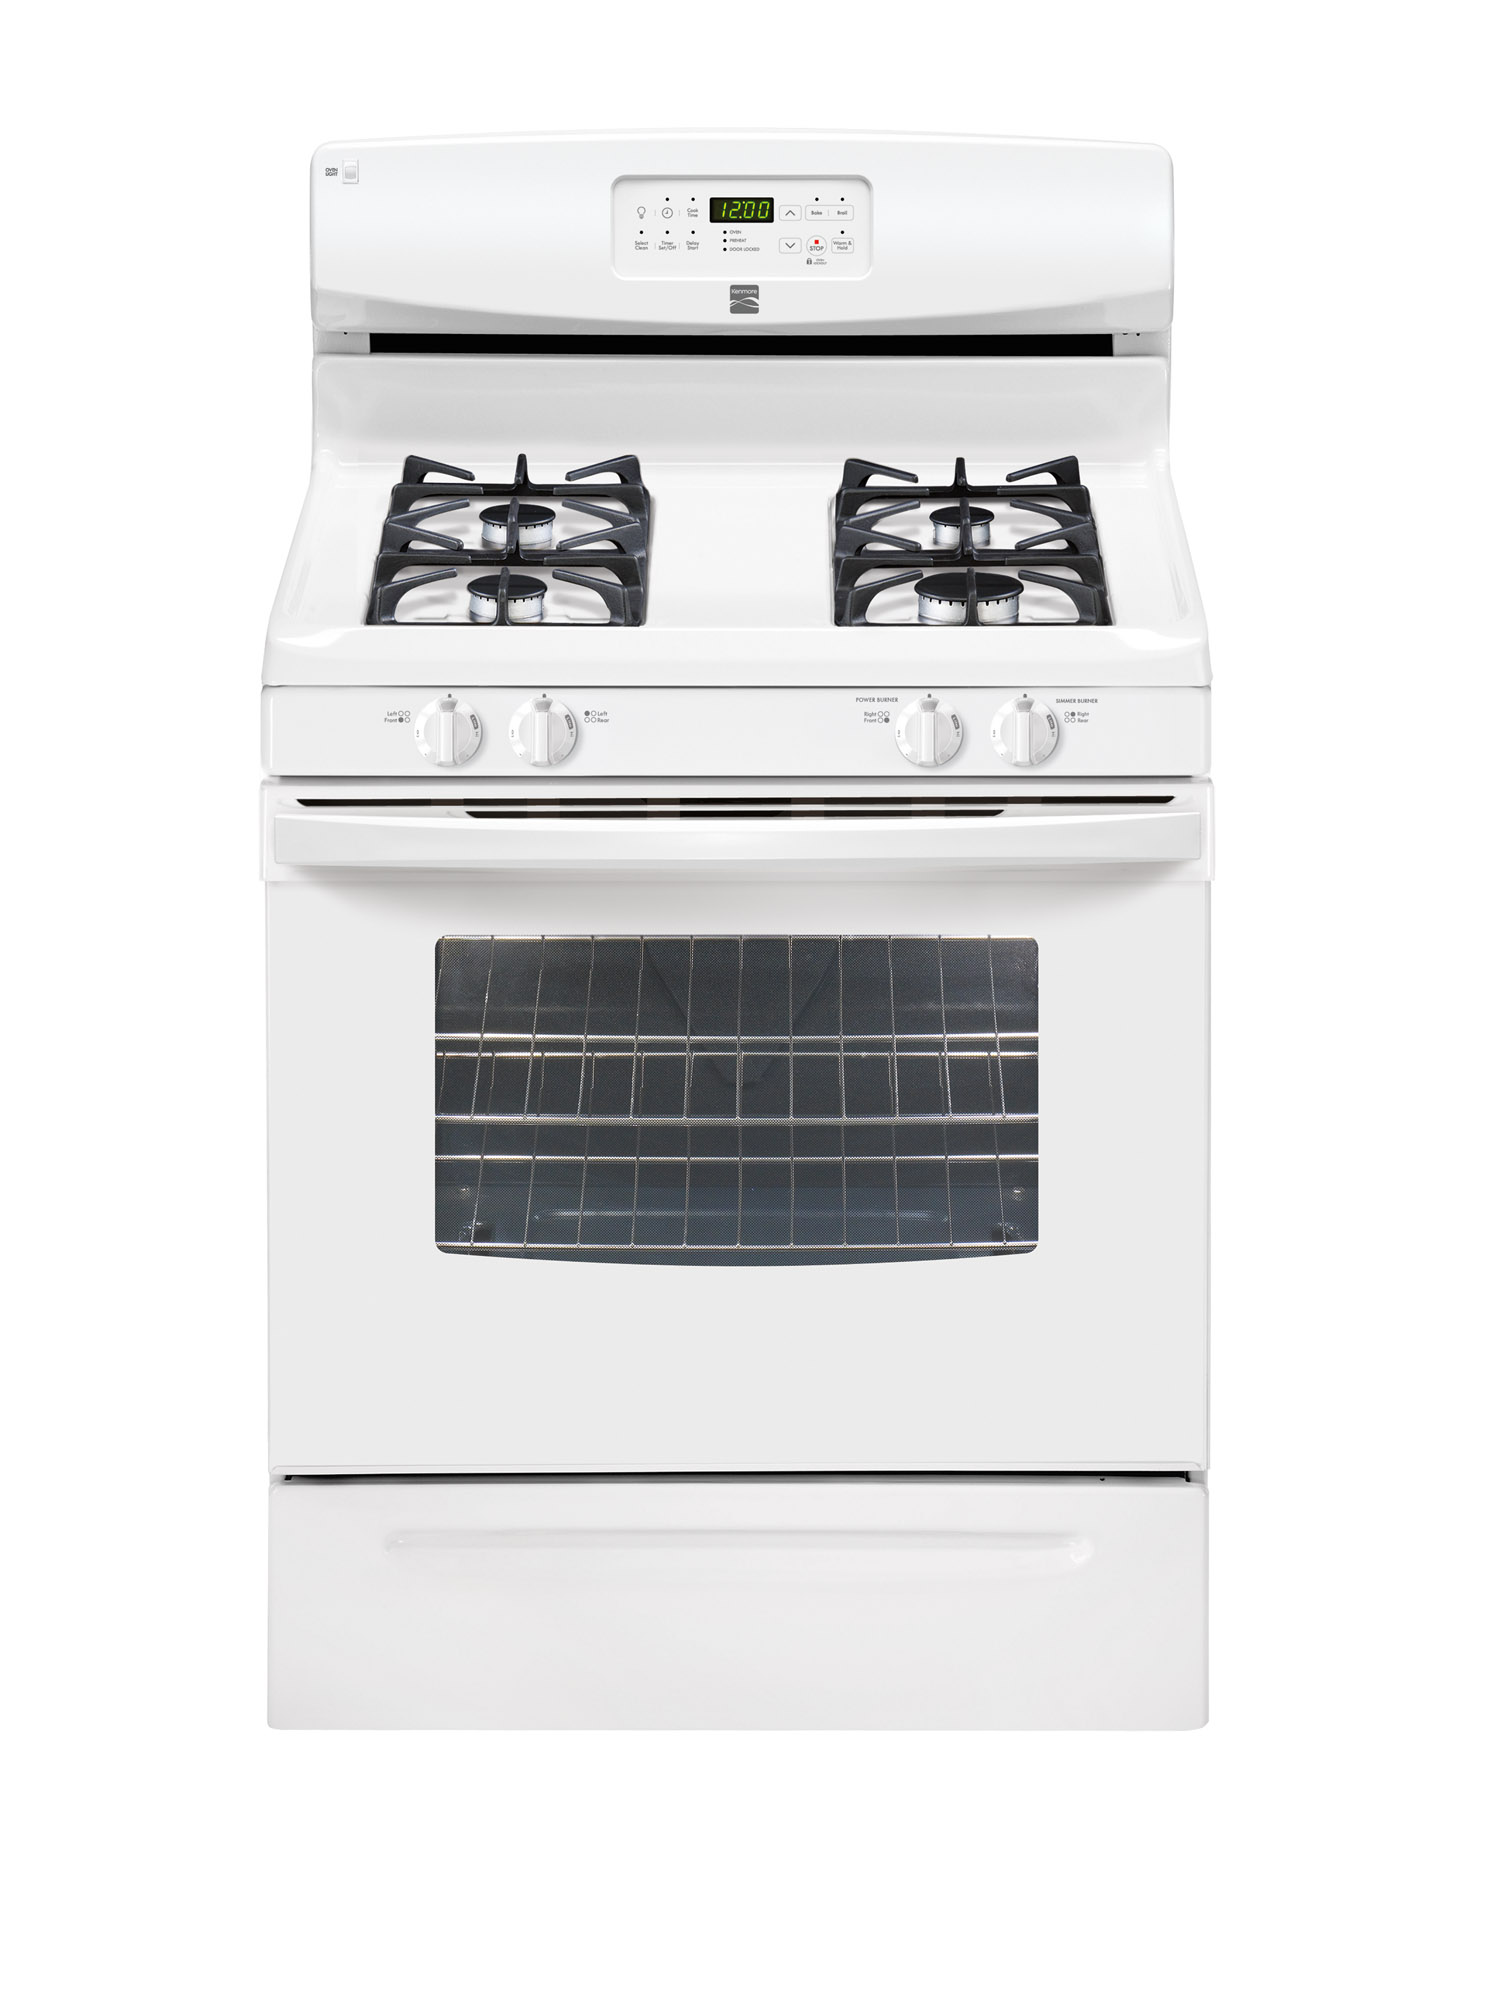 Kenmore Range Stove Oven Model 790 72502011 Parts